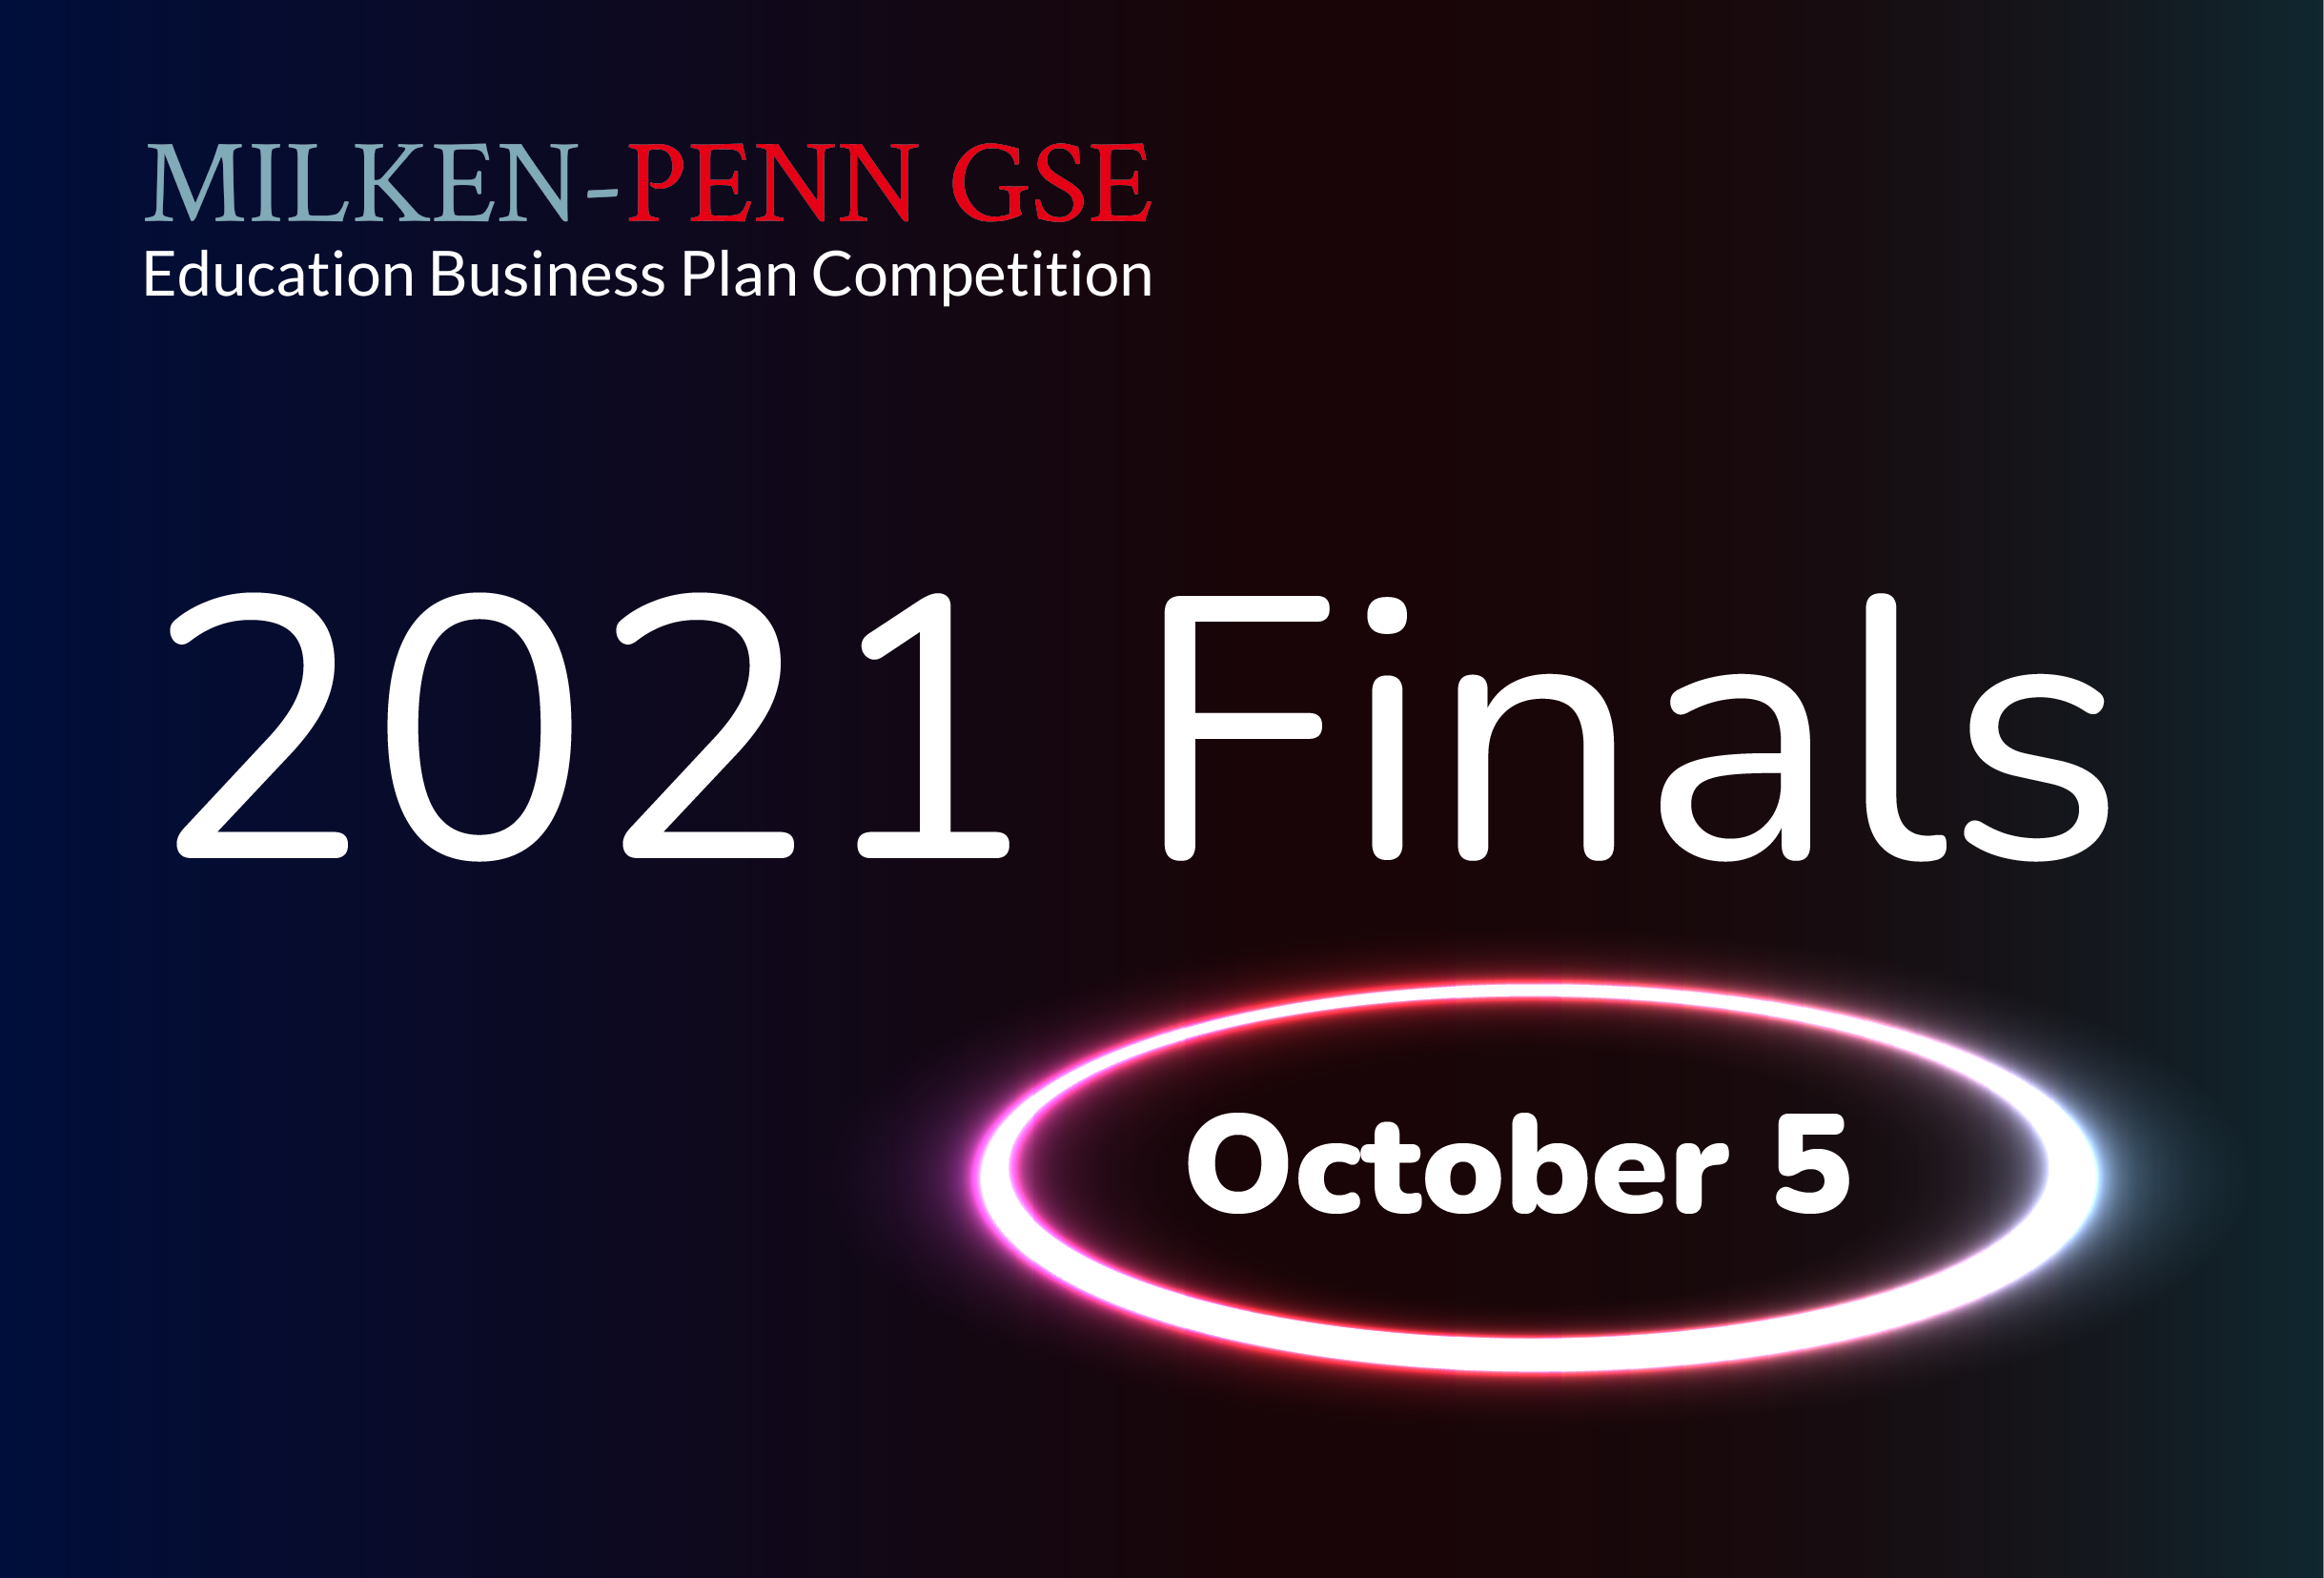 Attend the 2021 Milken-Penn GSE Education Business Plan Competition virtual finals on October 5th.